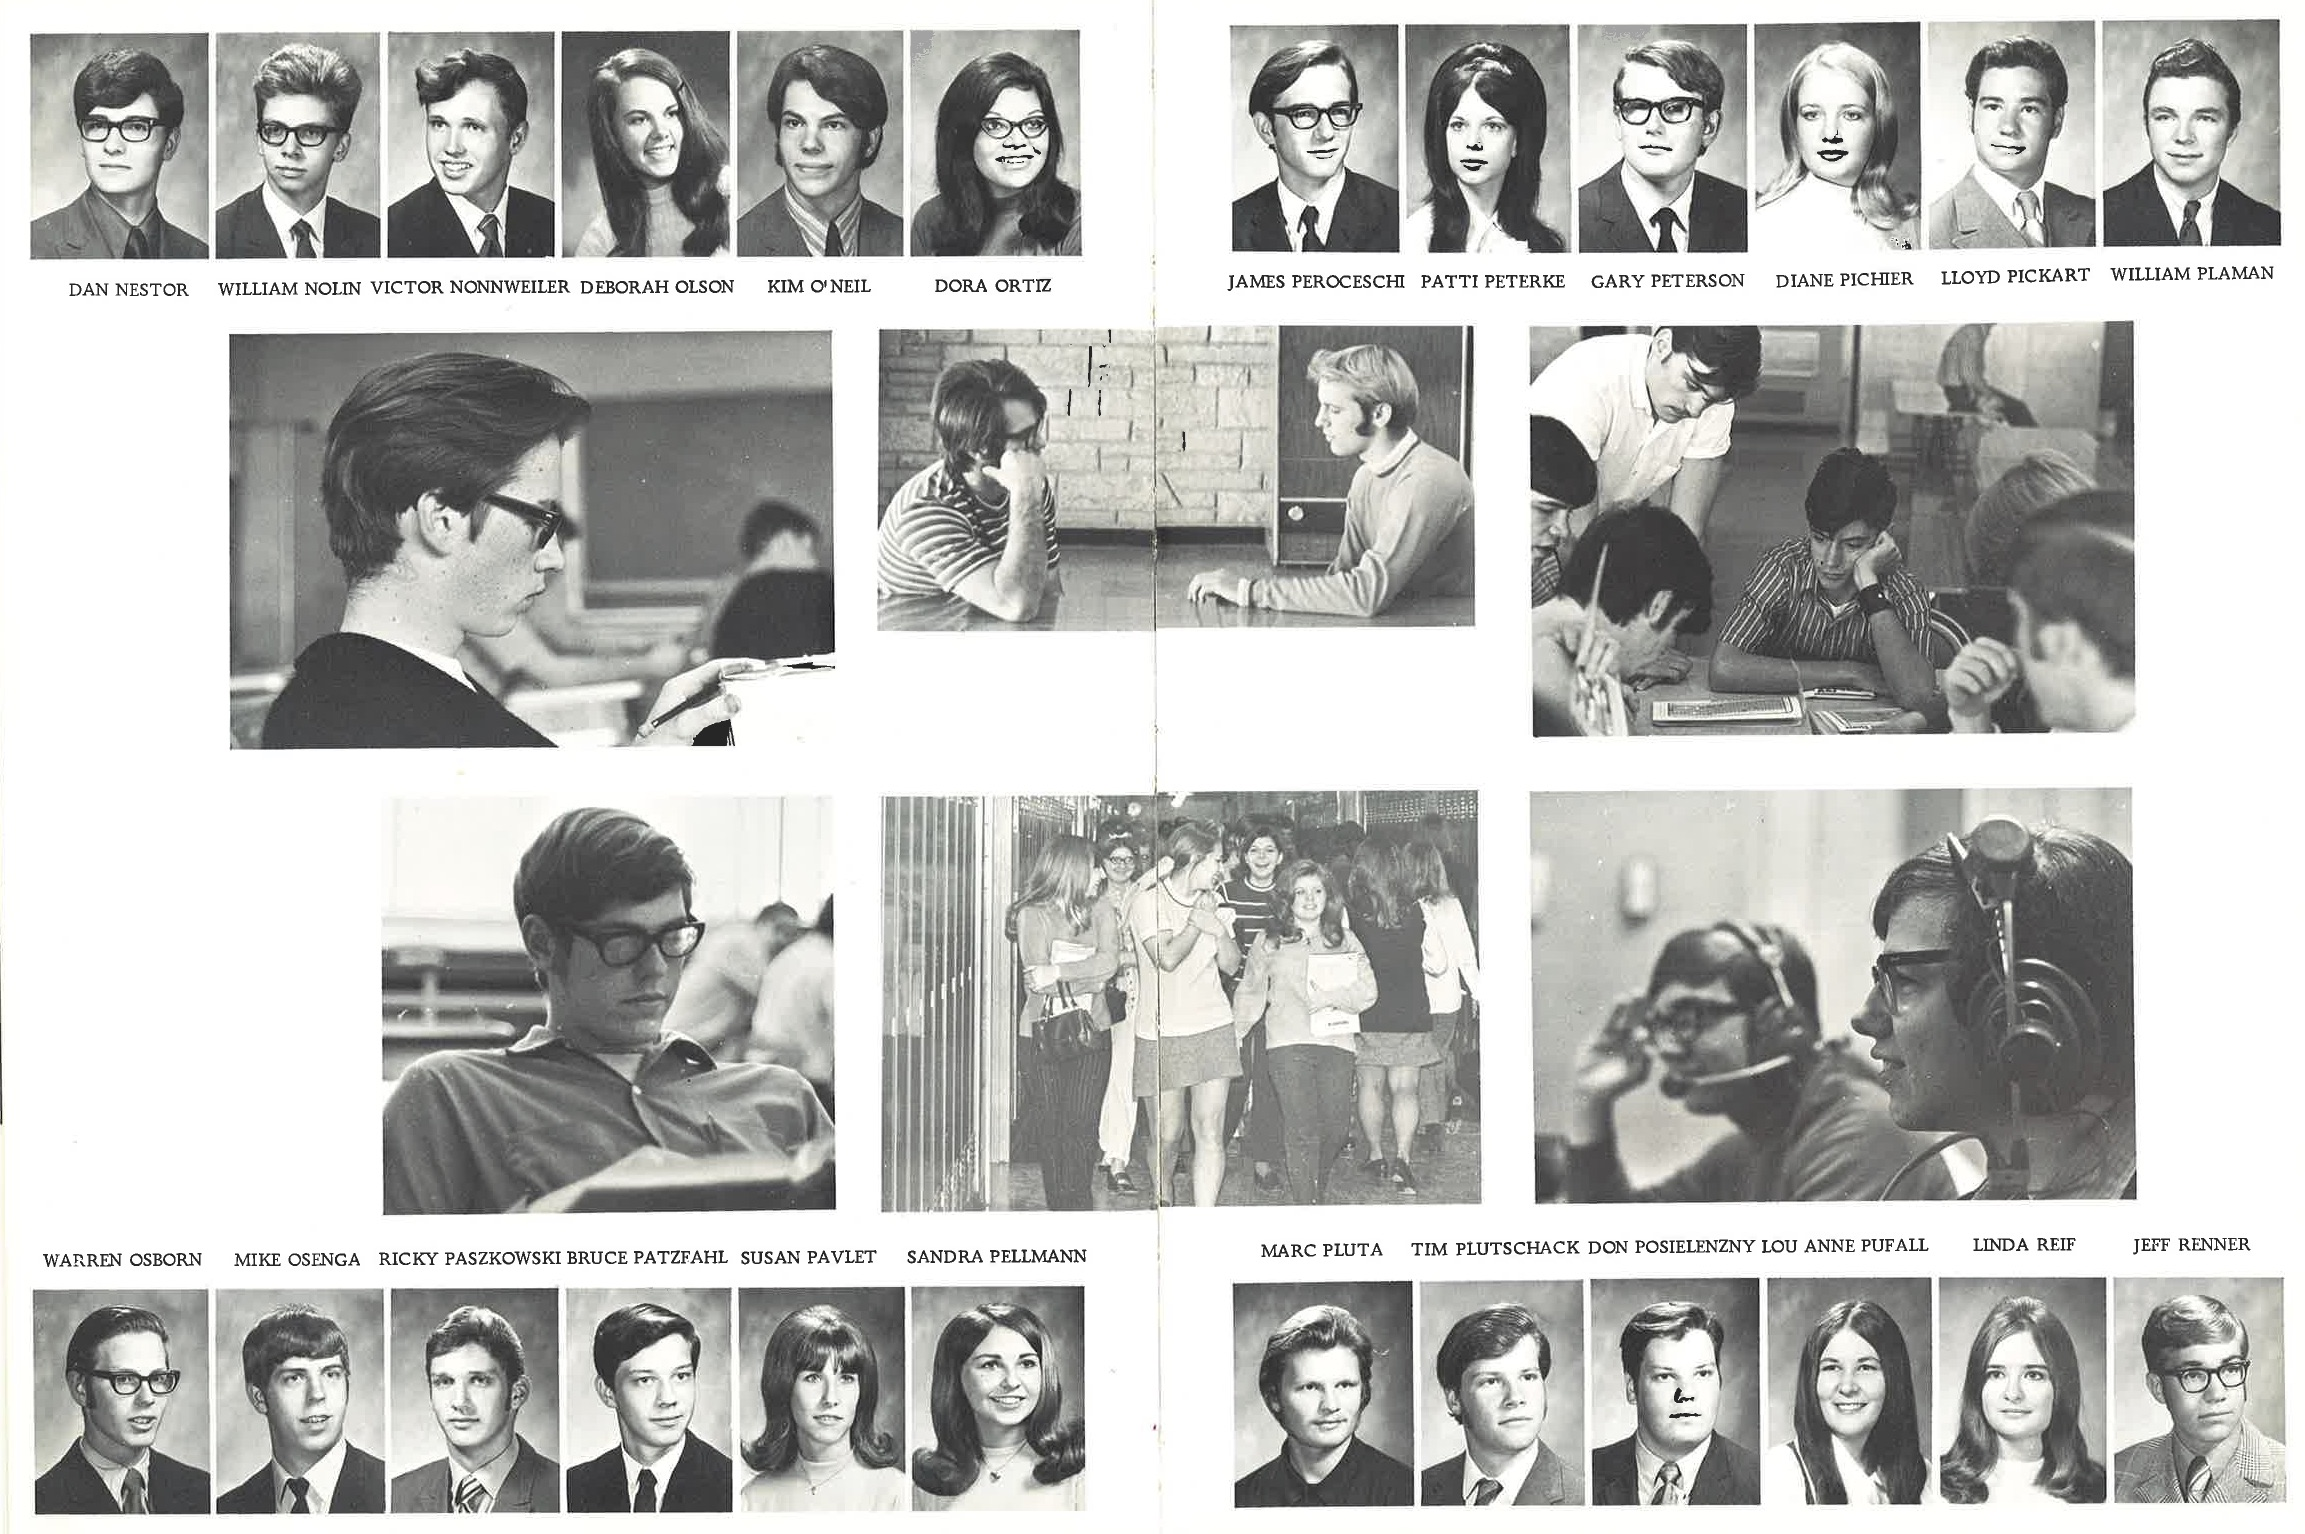 1971_Yearbook_134-135.jpg